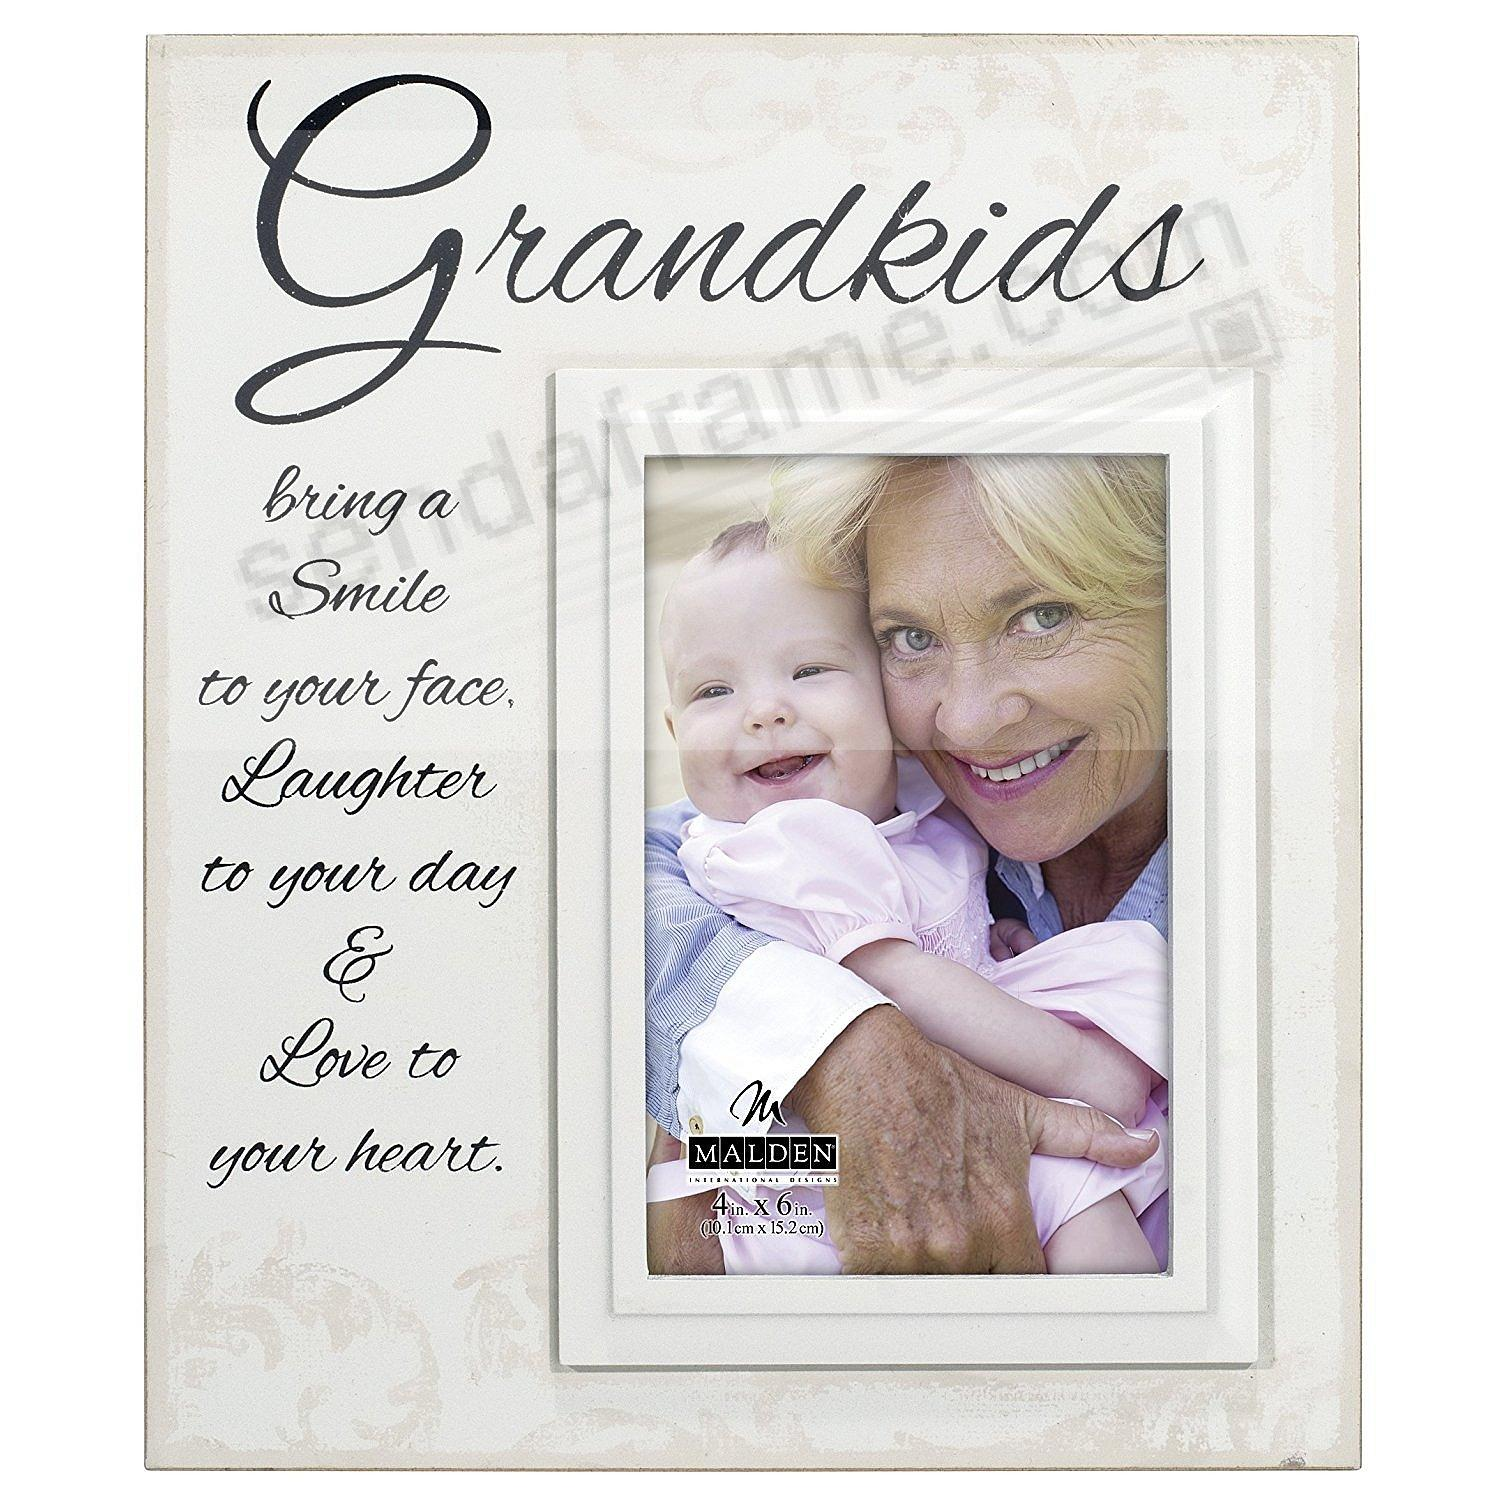 GRANDKIDS Script Expressions Wood 4x6 Frame Sign by Malden®